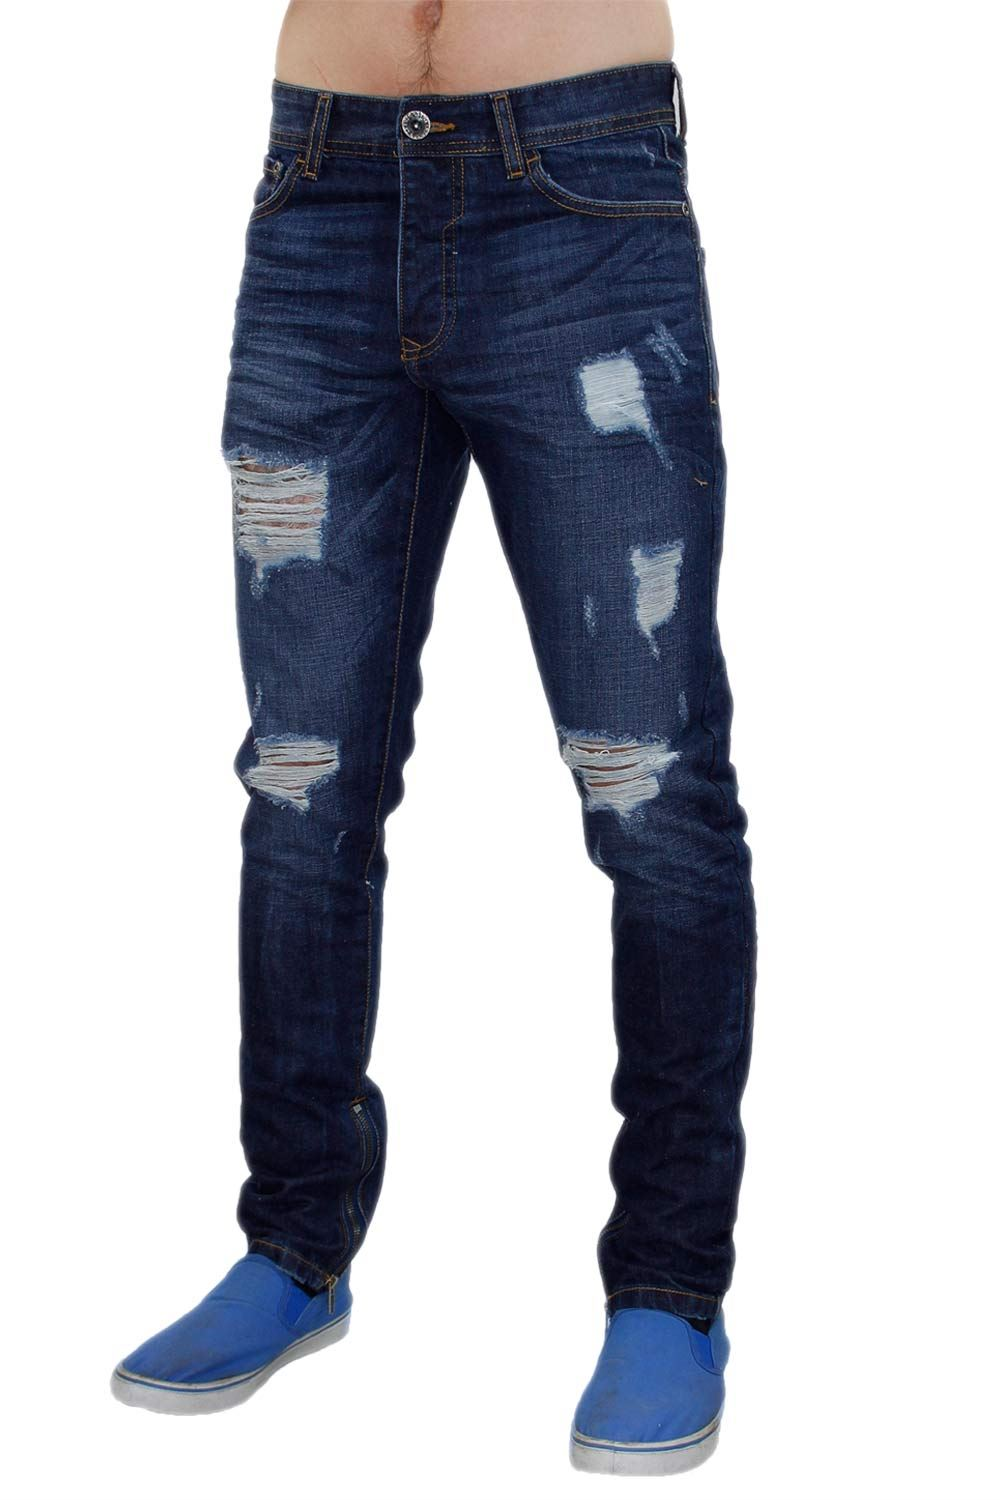 3dd32b5277 Men Ankle Zip Jeans Ripped Skinny Fit Denim Style Designer Quality ...